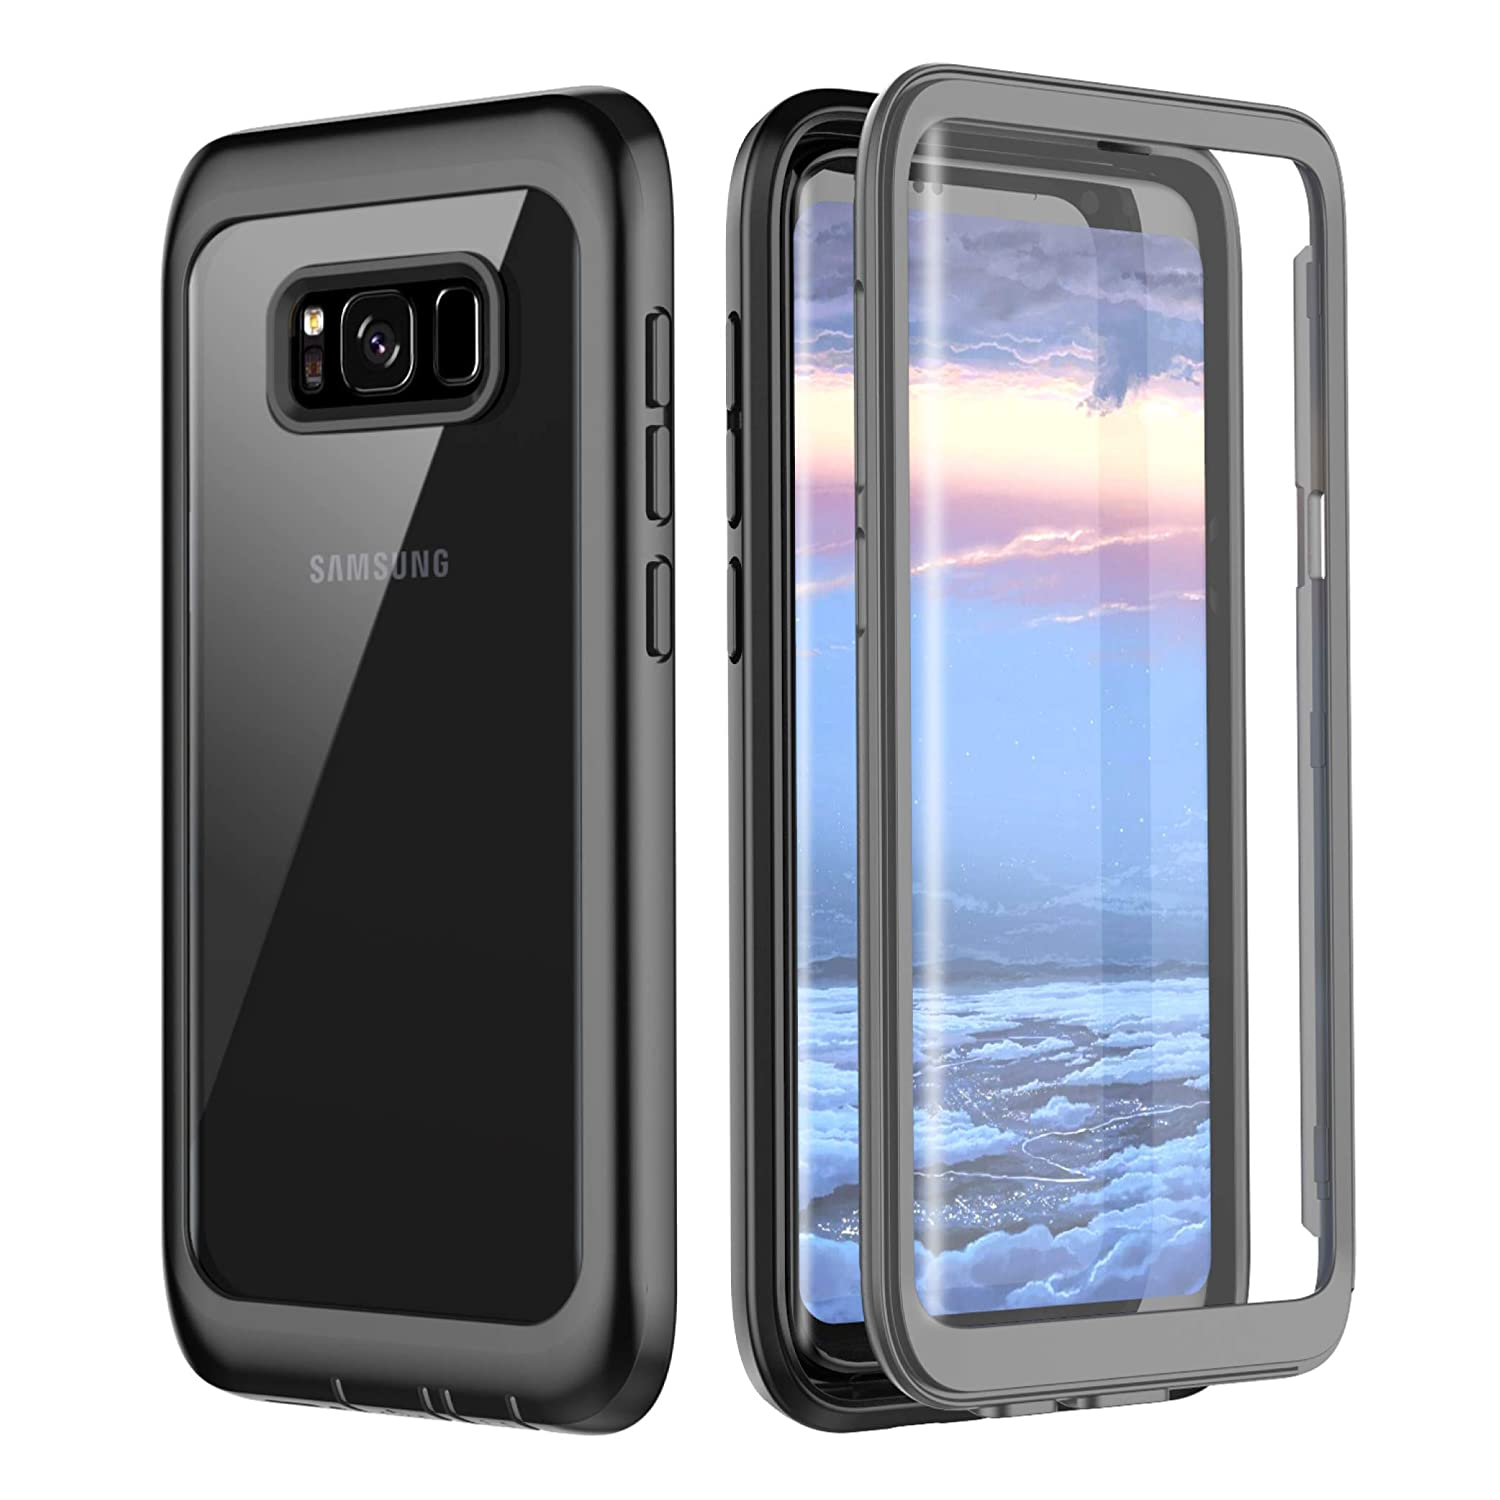 new style 0780c 23084 Samsung Galaxy S8 Case, Pakoyi Full Body Bumper Case Built-in Screen  Protector Slim Clear Shock-Absorbing Dustproof Lightweight Cover Case For  Samsung ...